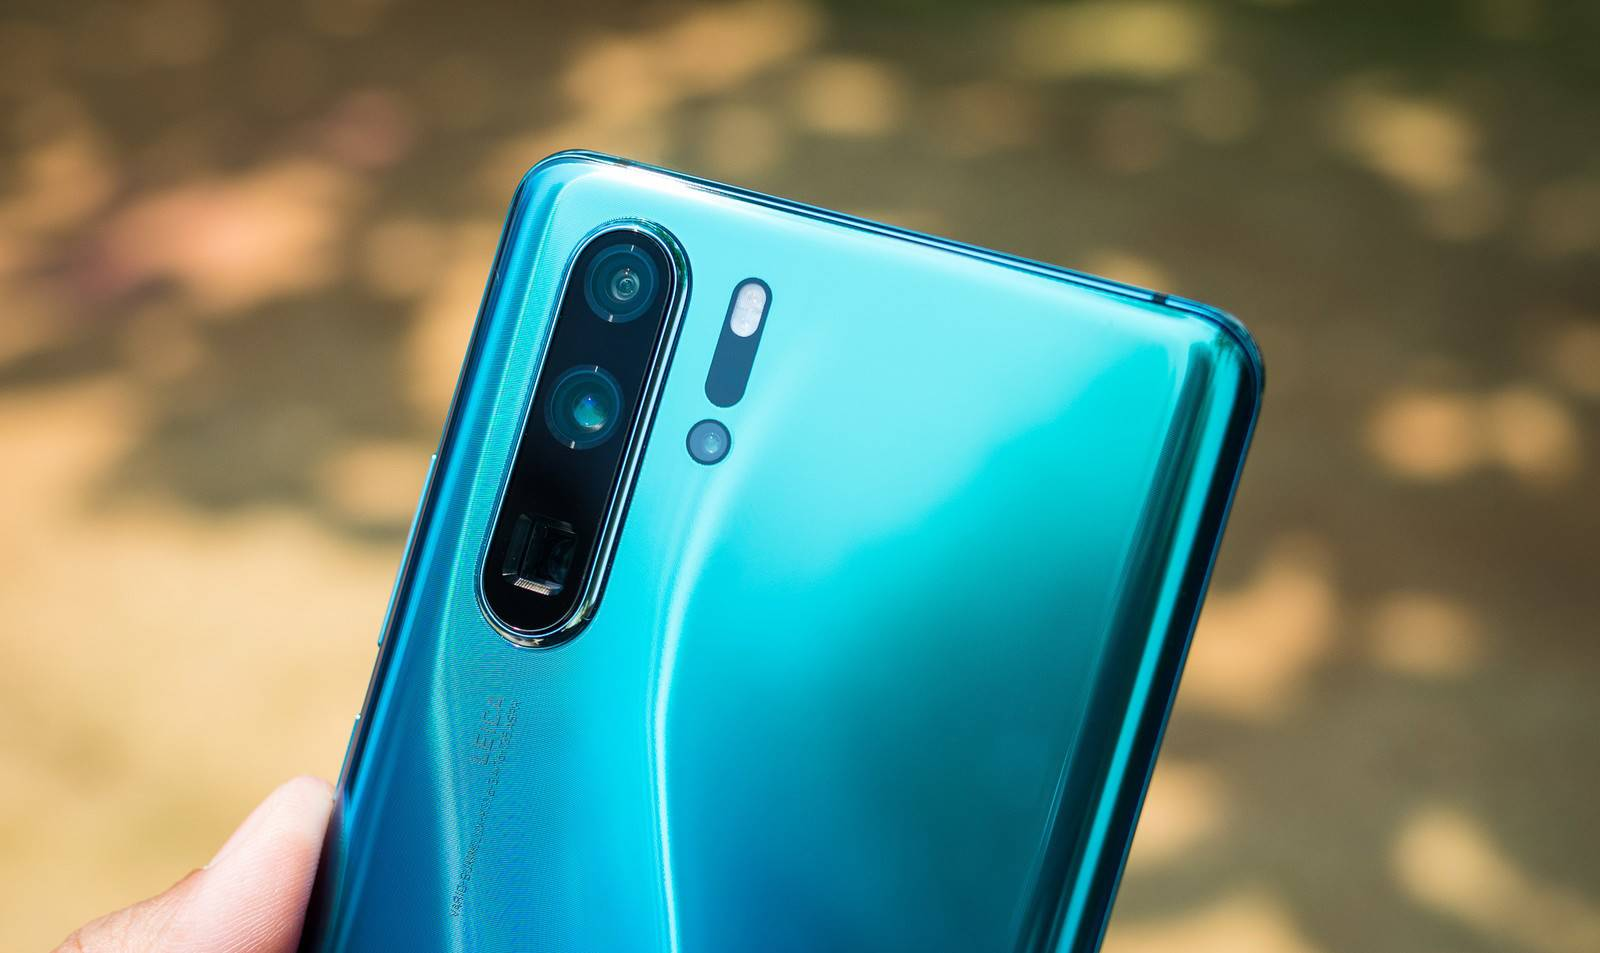 Huawei P30 Pro model nou cu 12 gb ram confirmat